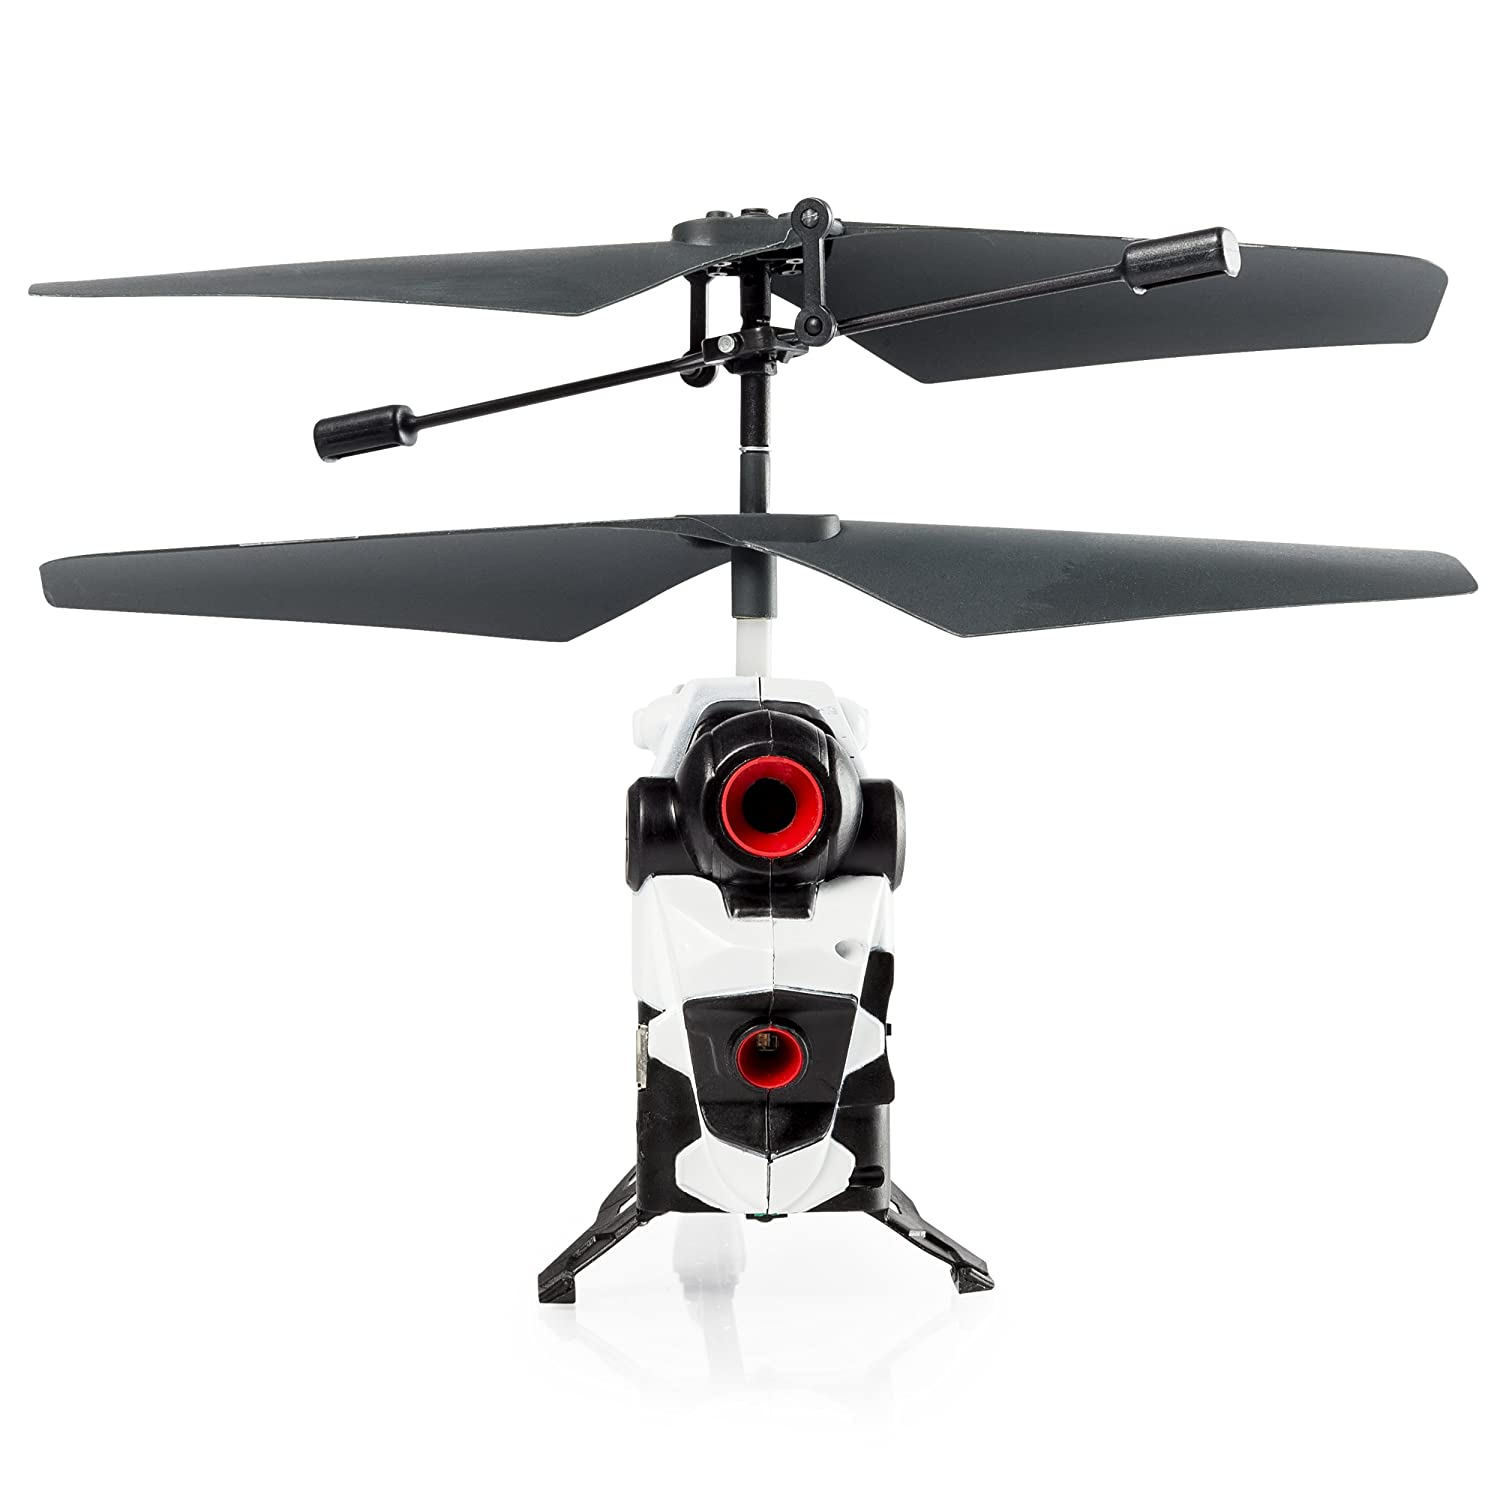 Air Hogs Altitude Video Drone Amazonca Toys Games